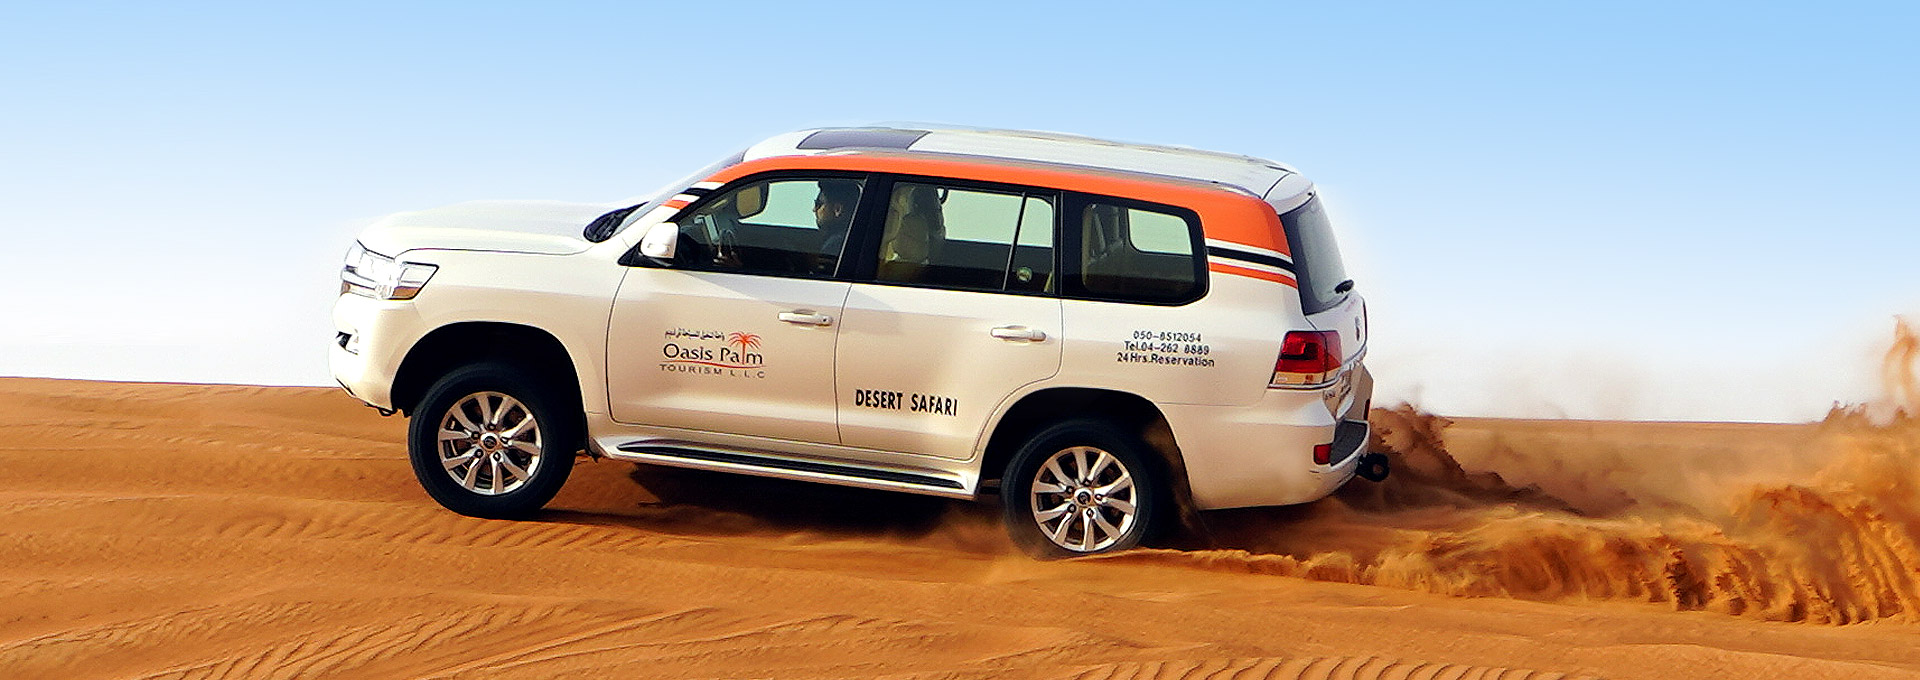 The convoy of land cruisers for most thrilling dune bashing